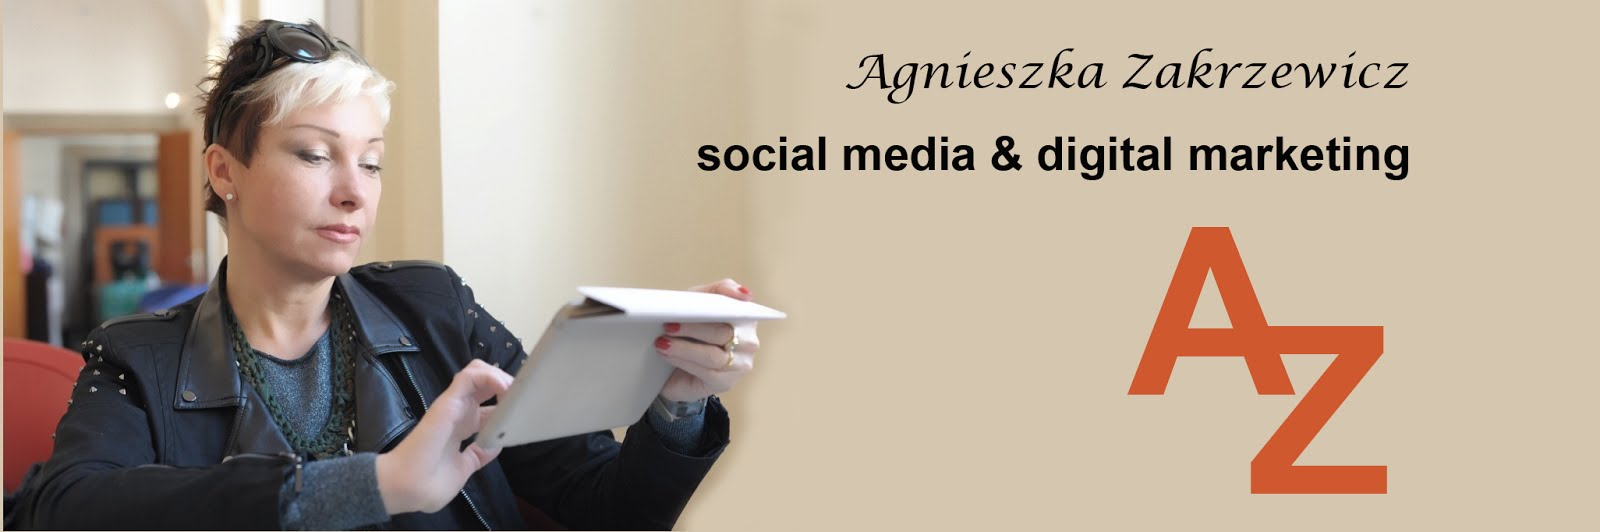 a-z social media & digital marketing